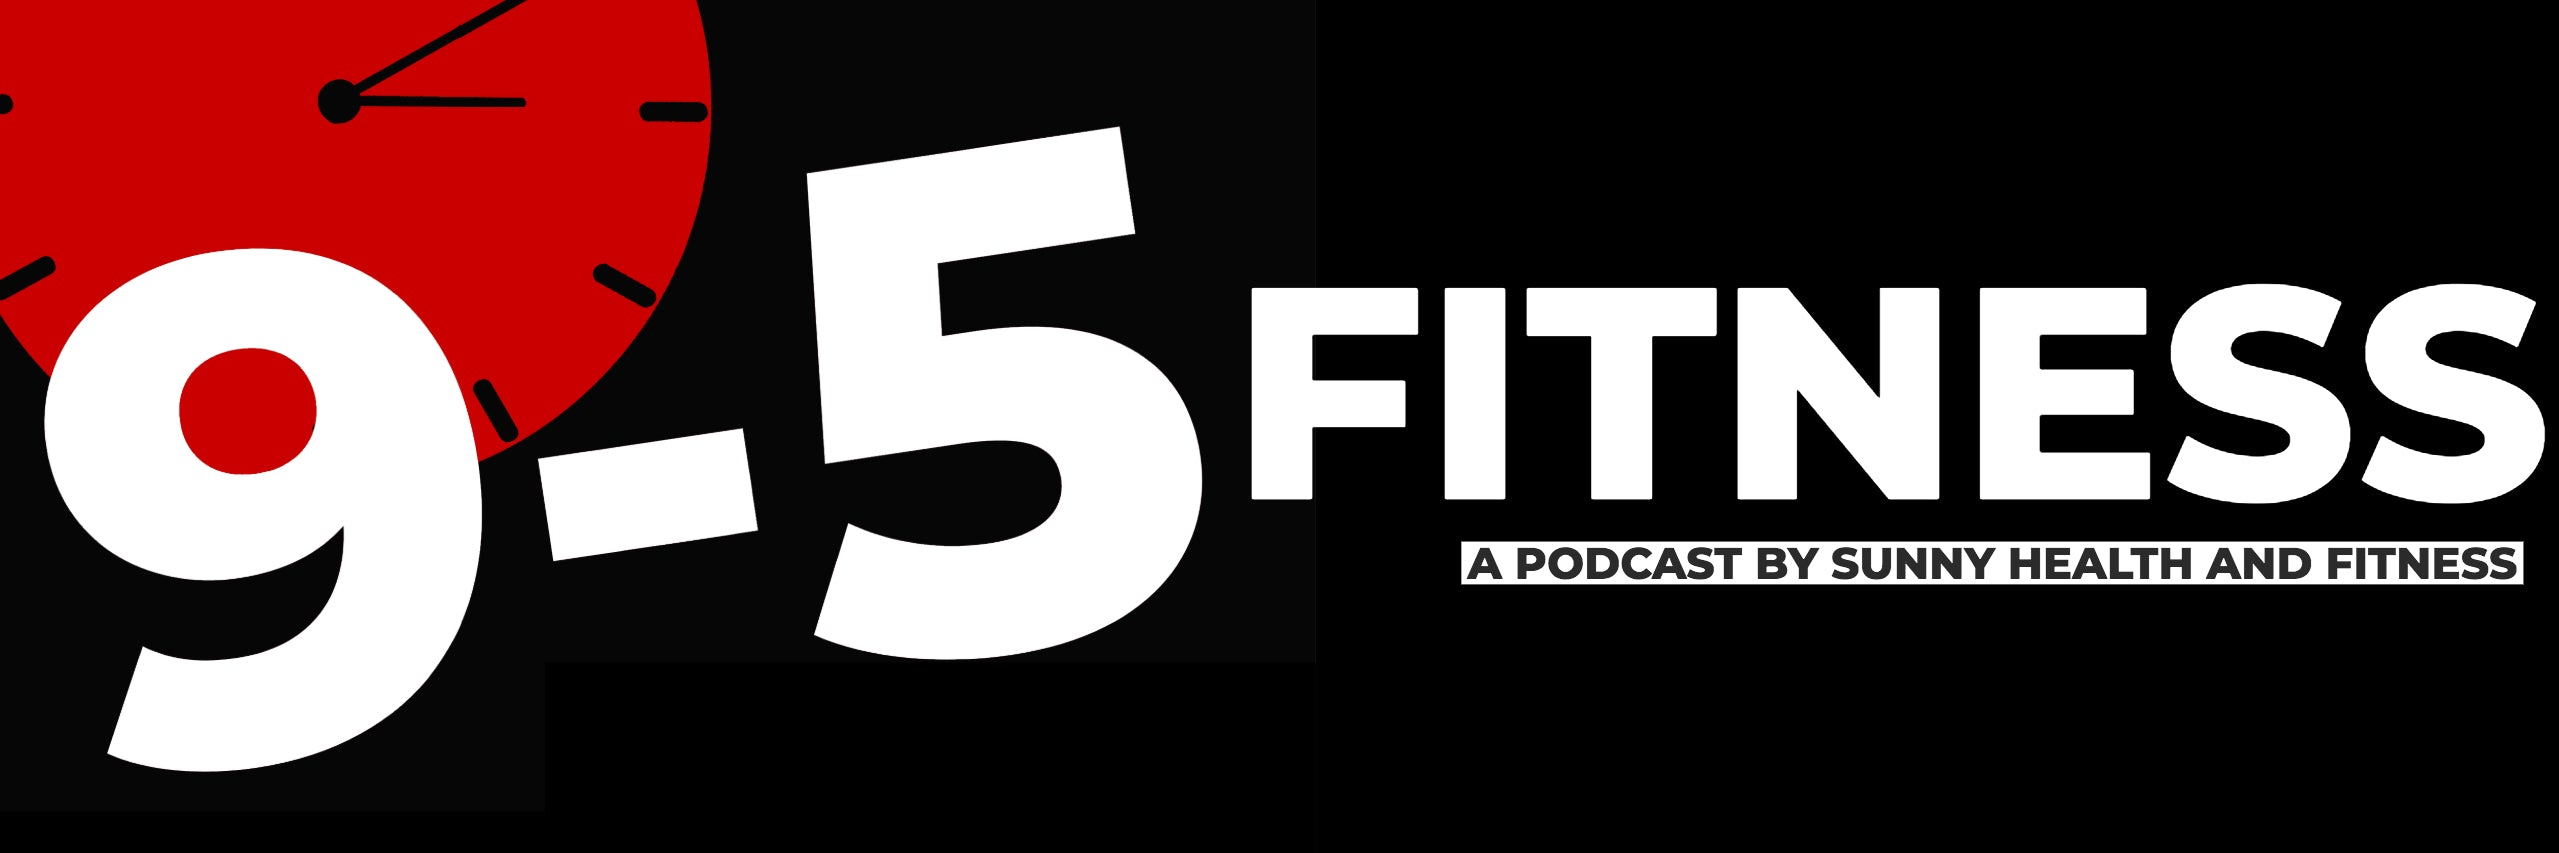 9 - 5 Fitness podcast banner with red clock silhouette in left upper corner